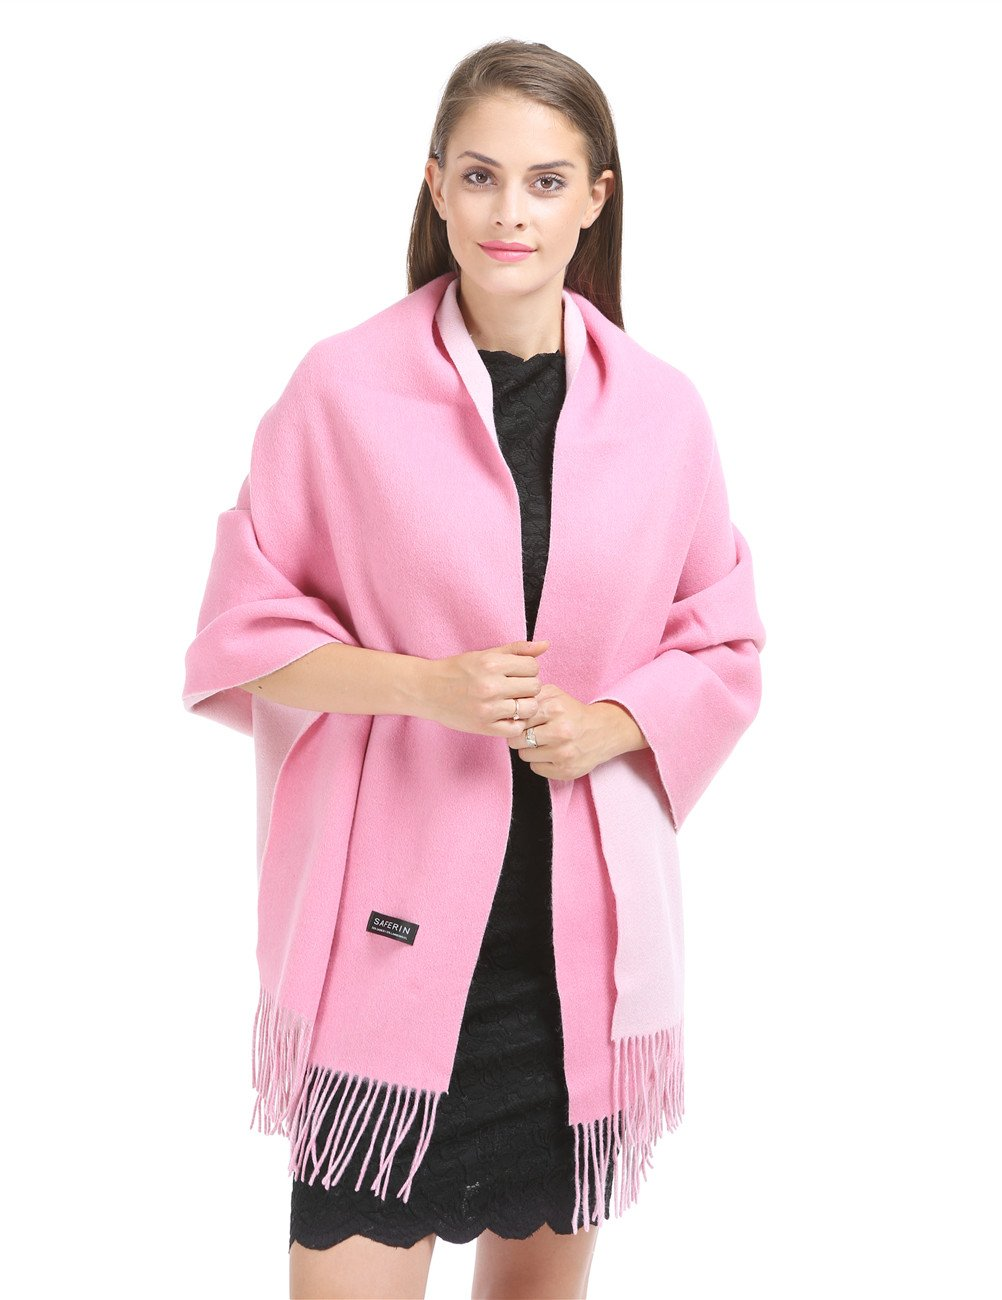 Saferin Extra Large 78''x28'' Women Two-sided Thick Solid Cashmere Lambswool Blend Pashmina Wrap Shawl Stole Scarf with Gift Box (34.pink and White)